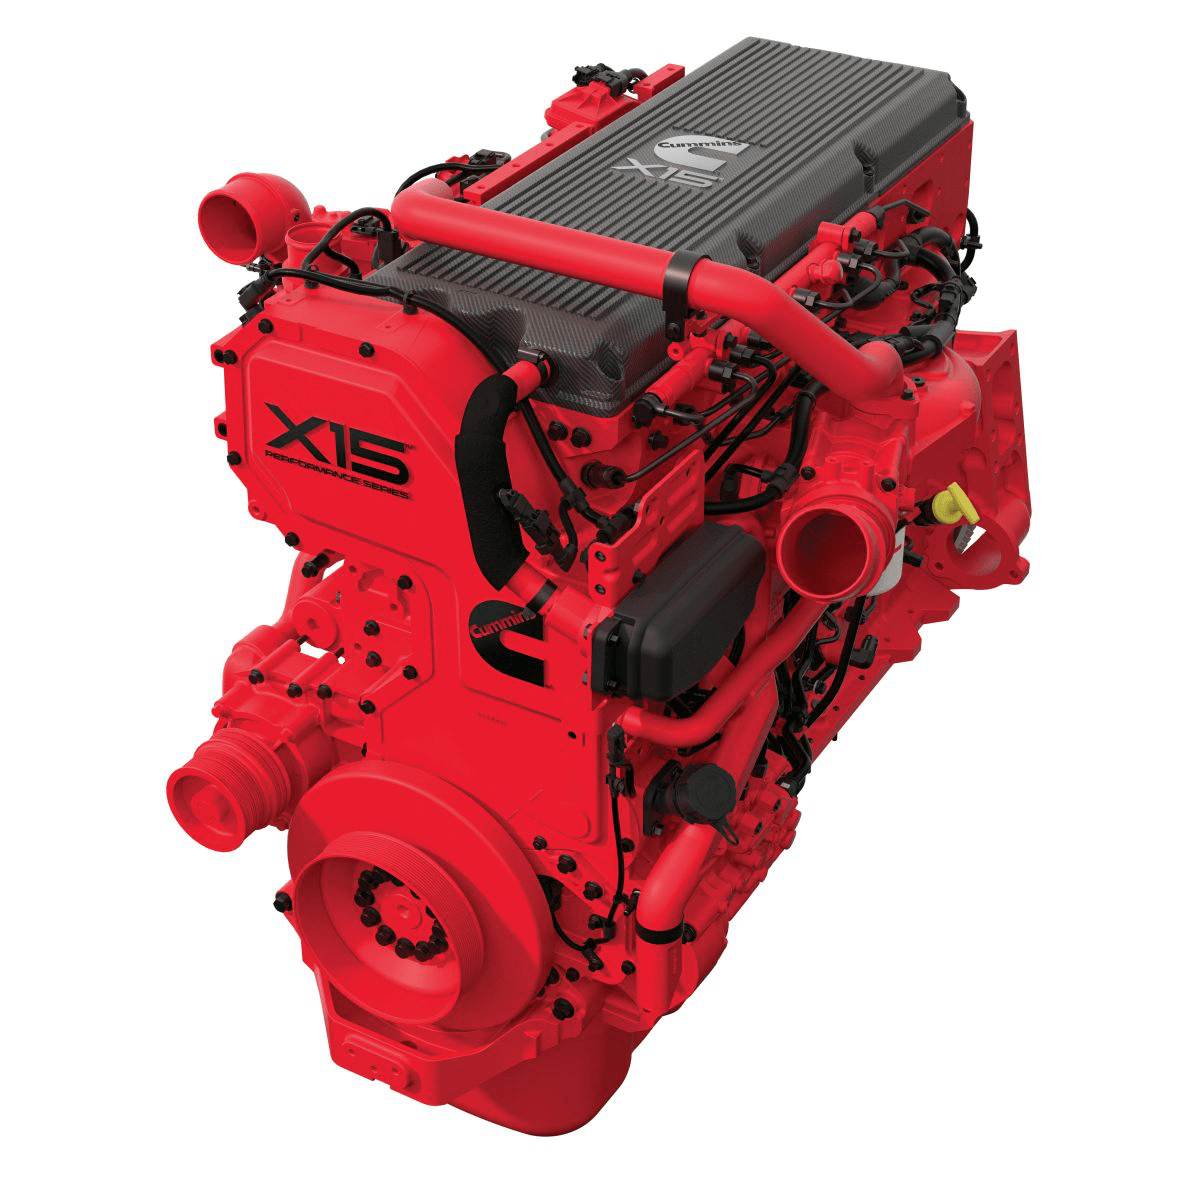 hight resolution of cummins recalling half a million engines on voluntary basis due to degradation of emissions control systems